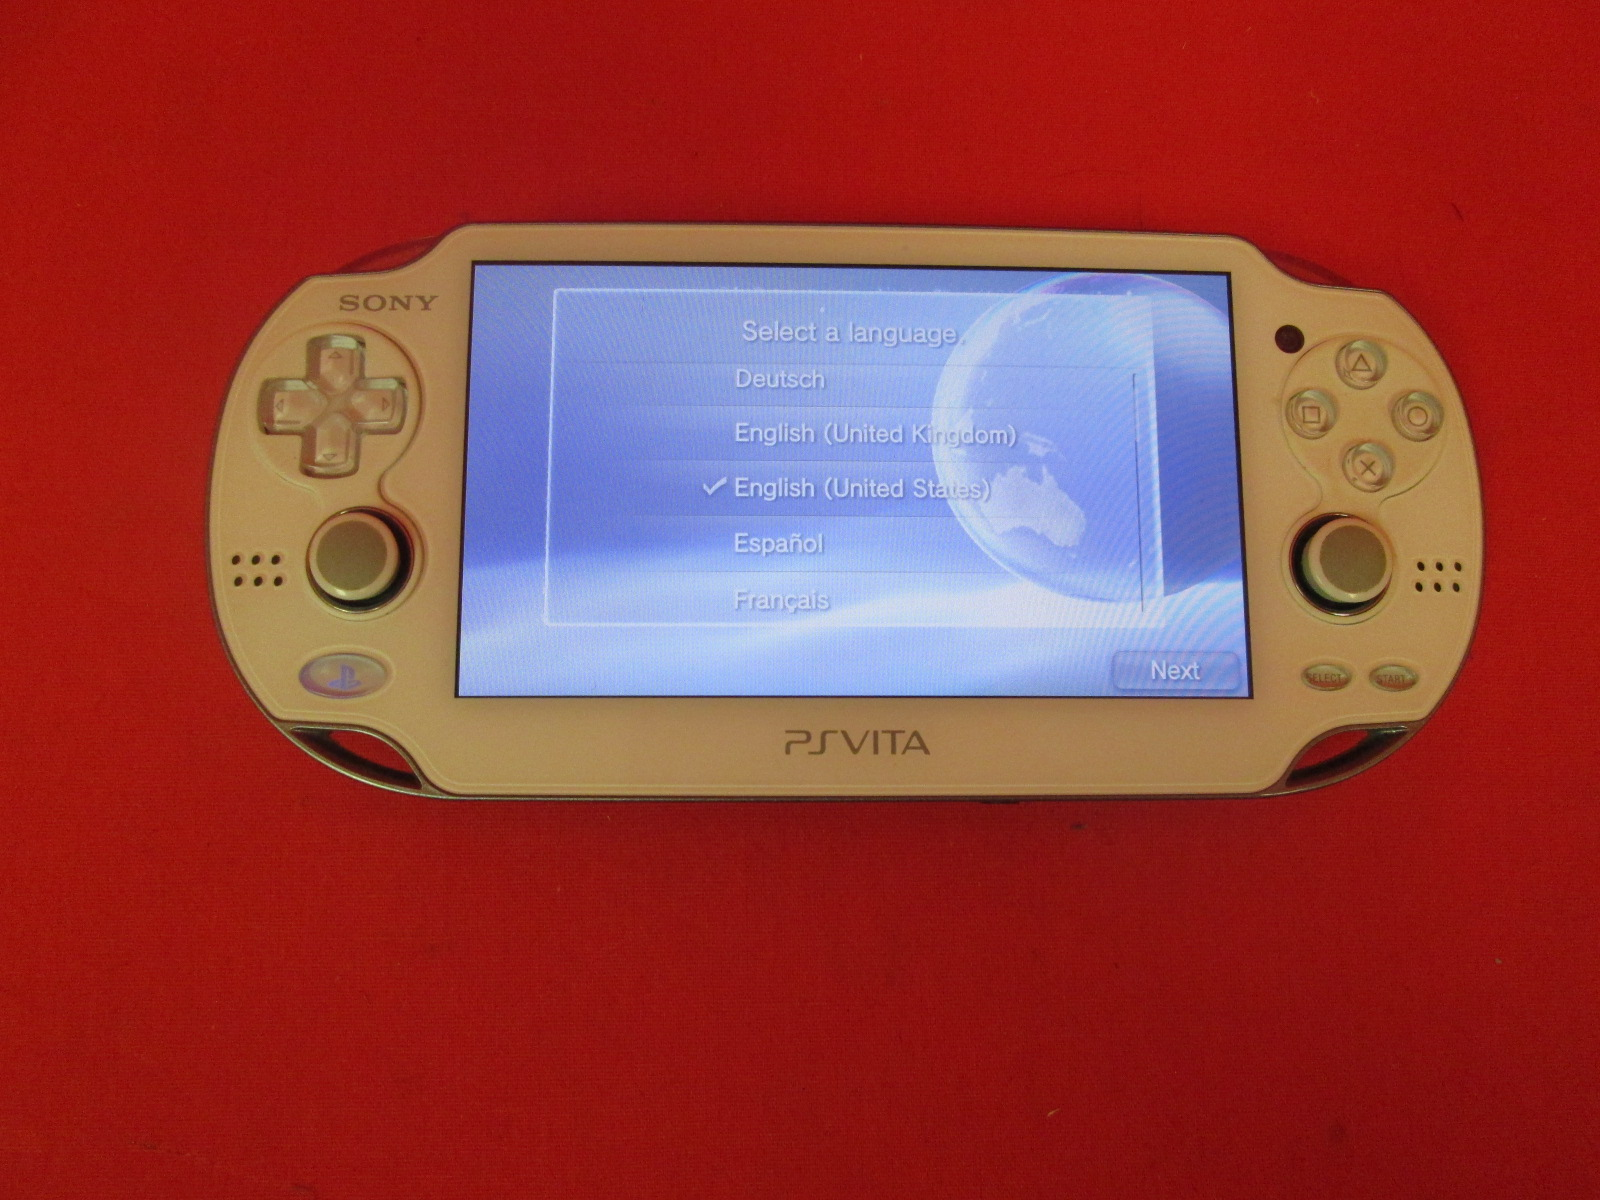 Sony PlayStation Vita Handheld Console Glacier White PCH-1001